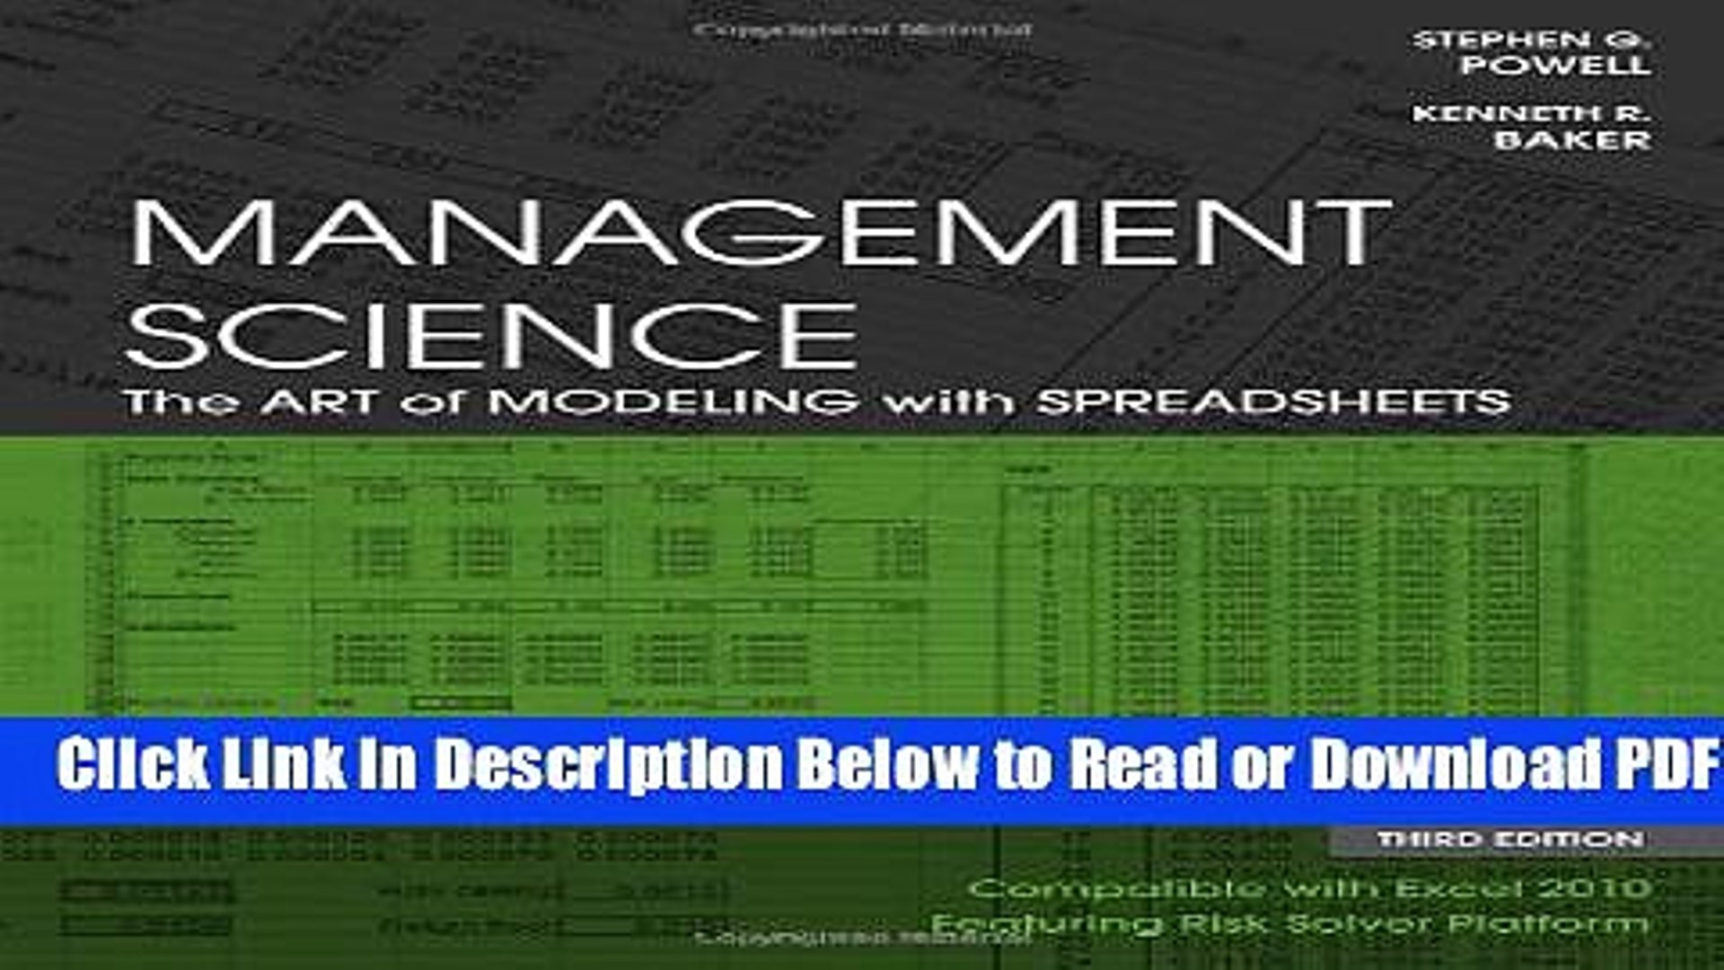 Management Science The Art Of Modeling With Spreadsheets Pdf Intended For Pdf] Management Science: The Art Of Modeling With Spreadsheets